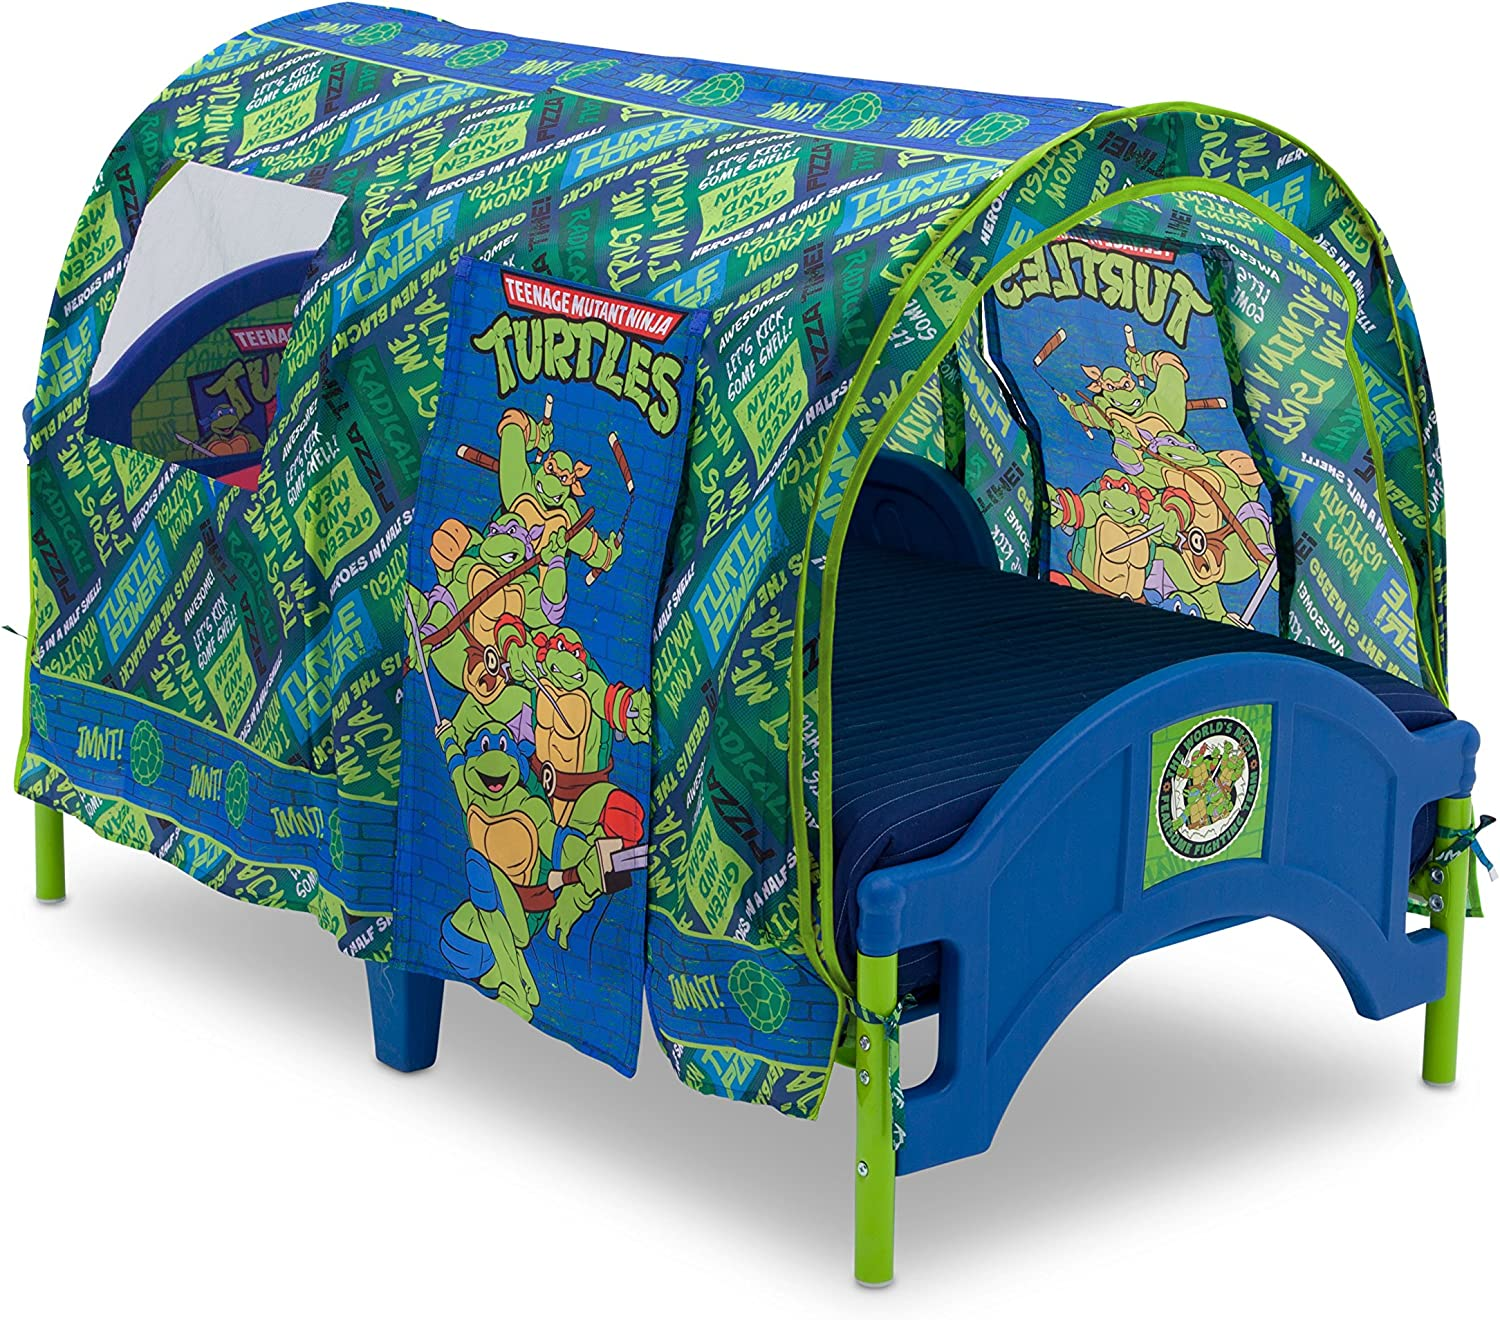 Nickelodeon Teenage Mutant Ninja Turtles Toddler Tent Bed, Multicolor